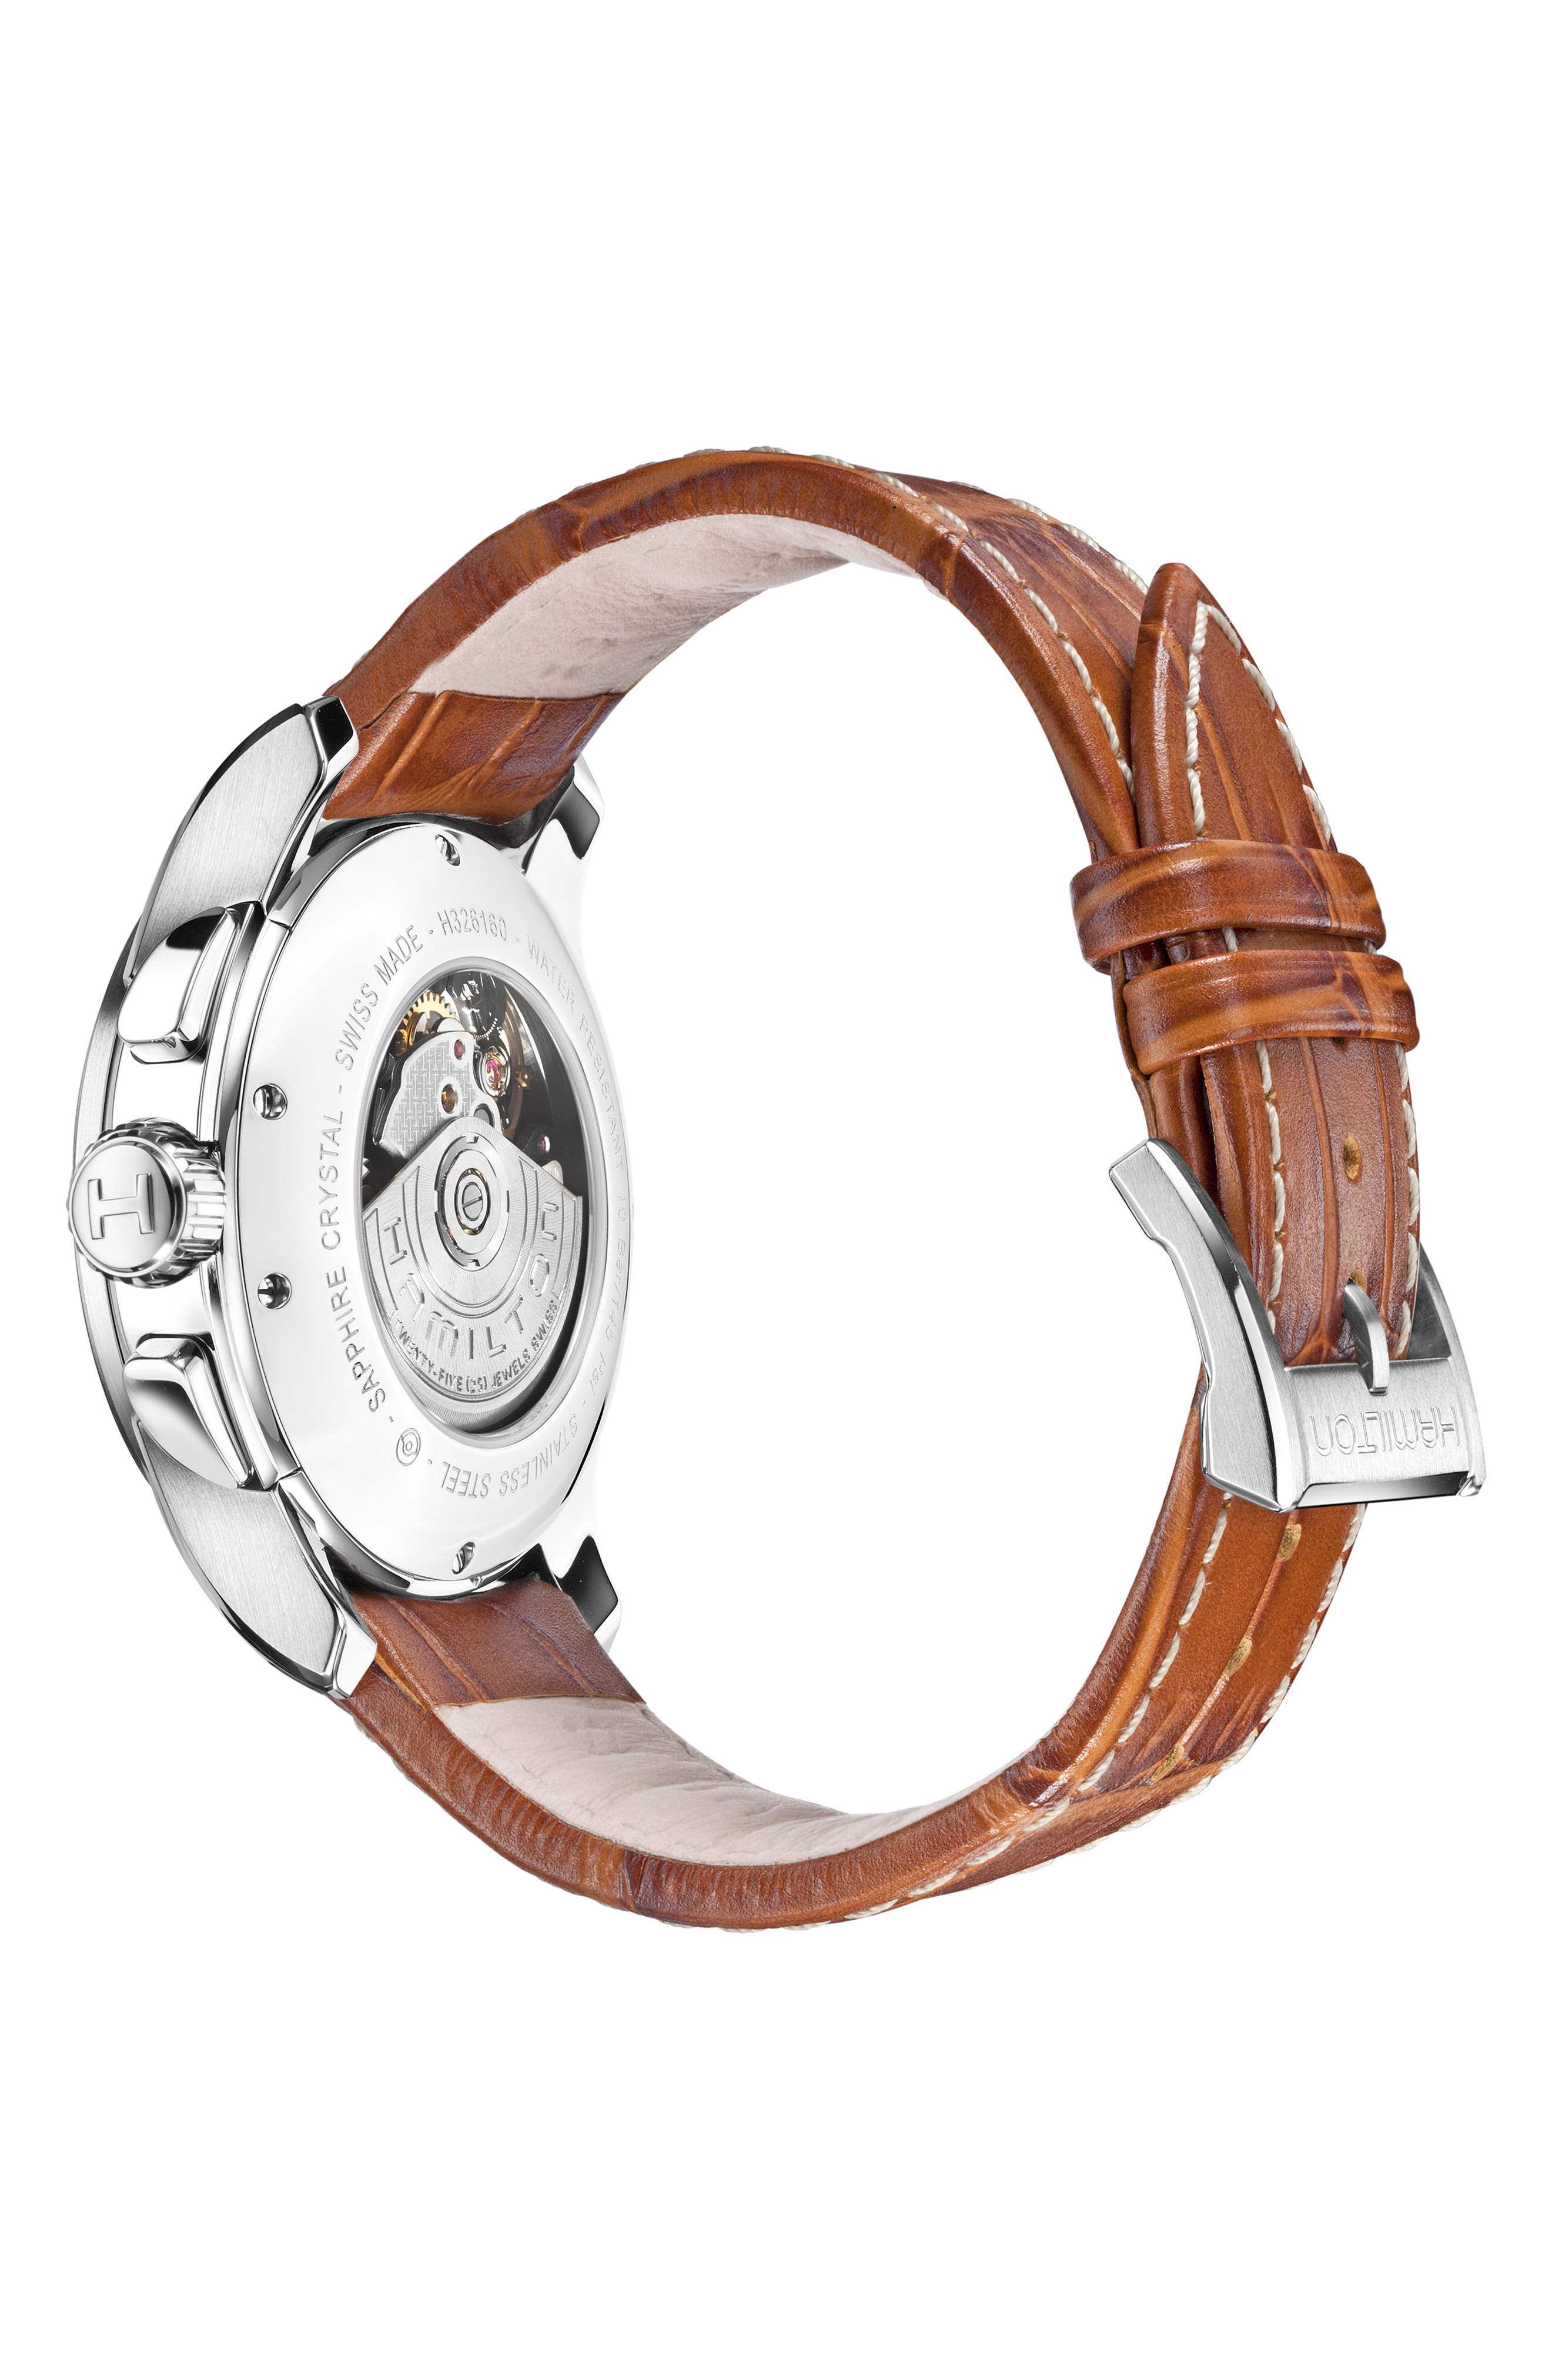 HAMILTON, Jazzmaster Viewmatic Auto Leather Strap Watch, 40mm, Alternate thumbnail 2, color, BROWN/ SILVER